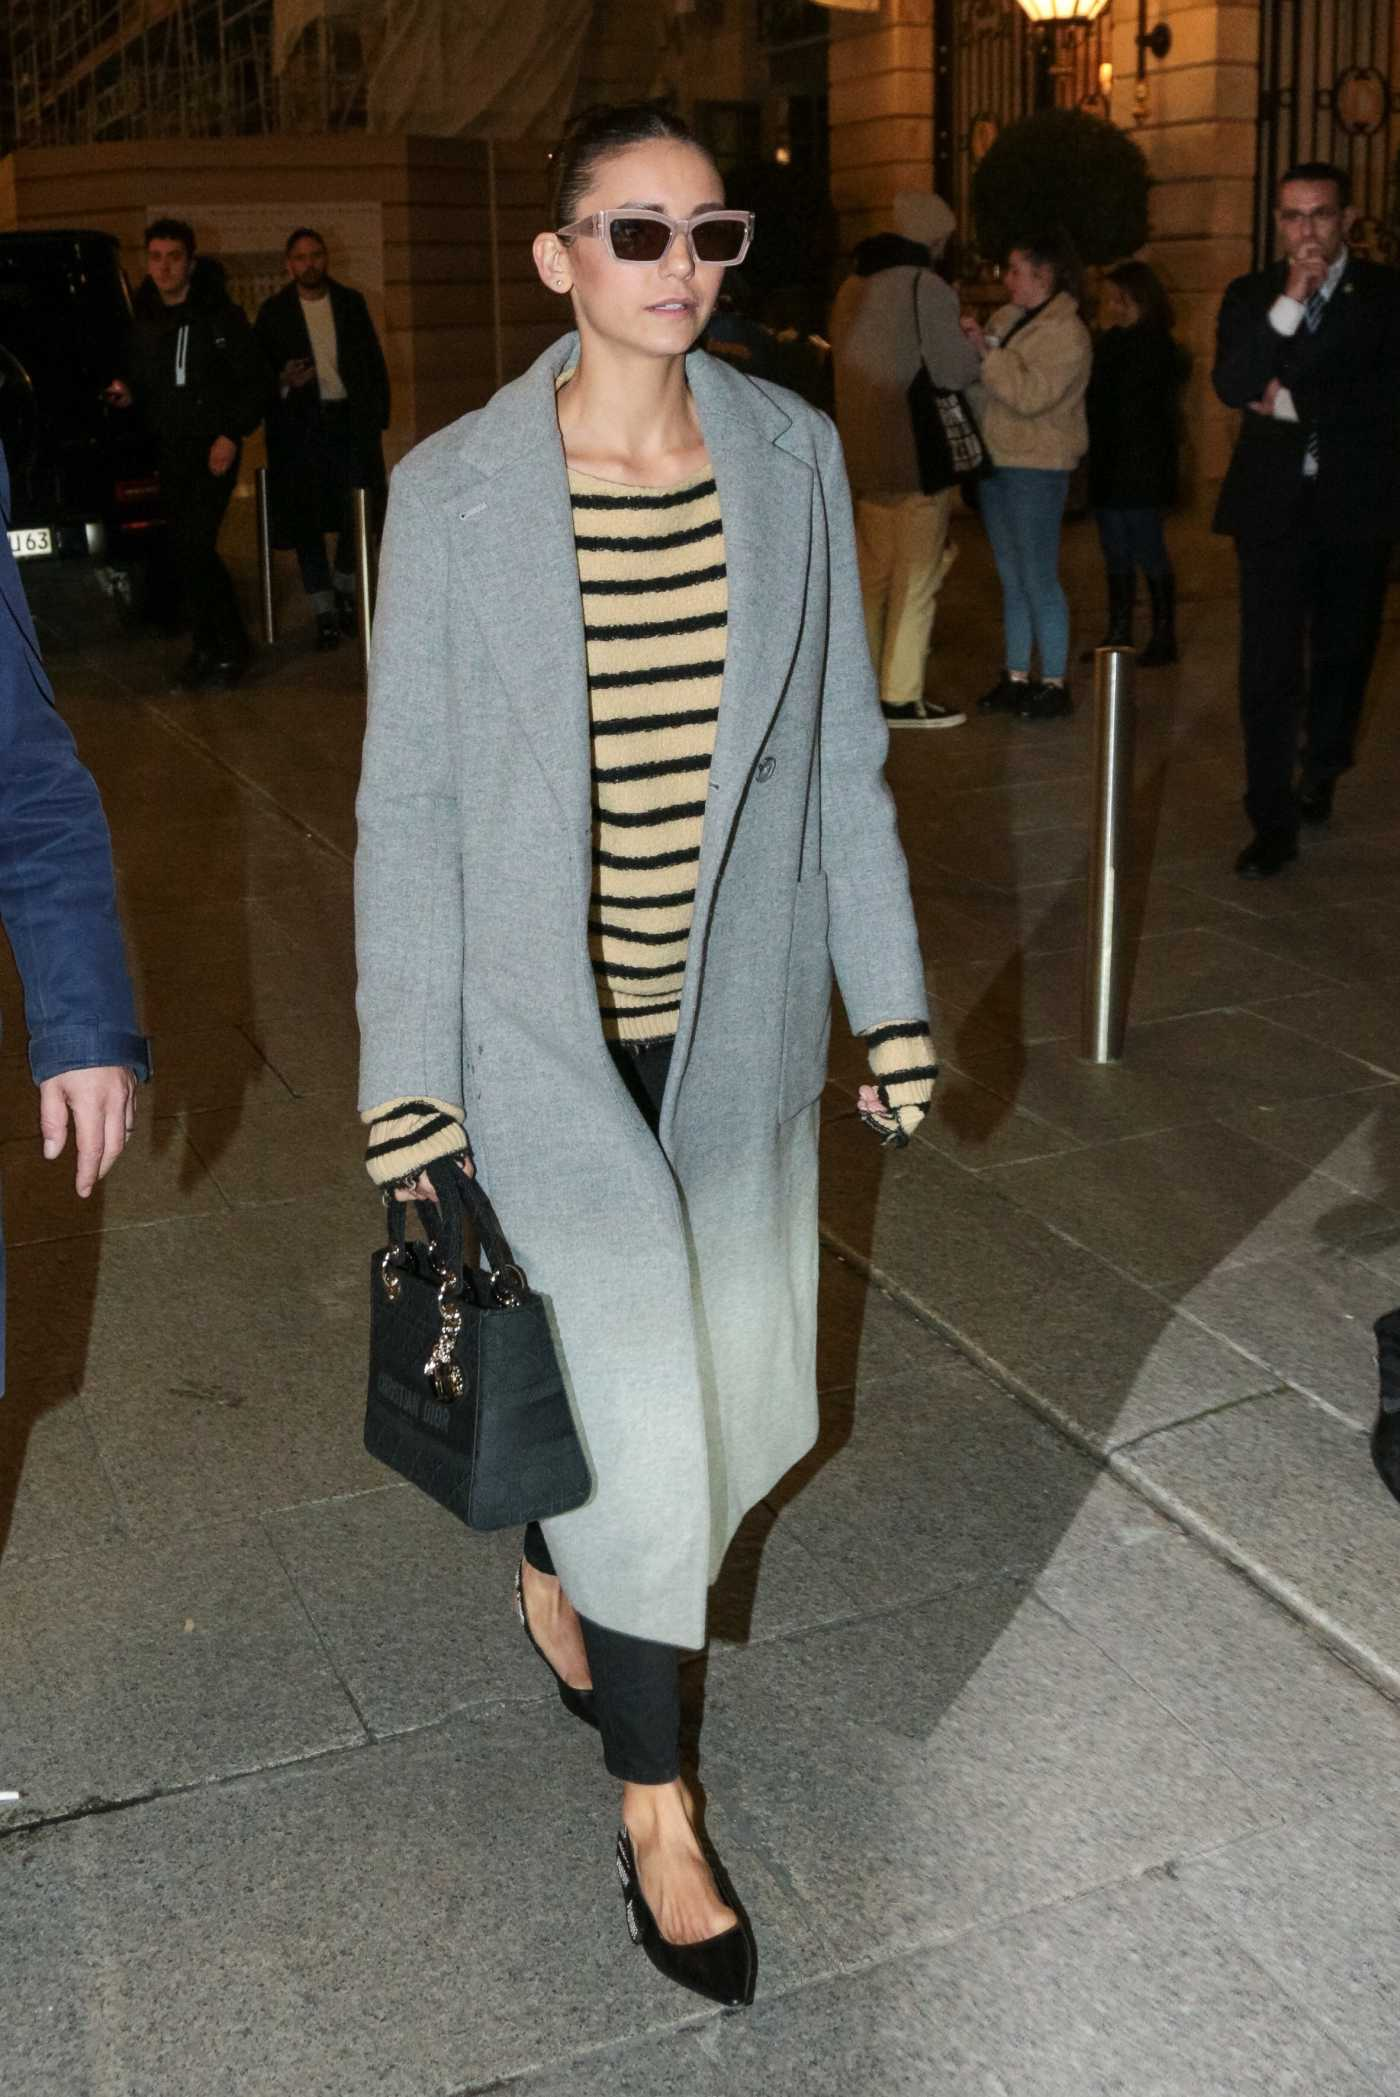 Nina Dobrev in a Gray Coat Leaves the Ritz Hotel in Paris 02/25/2020